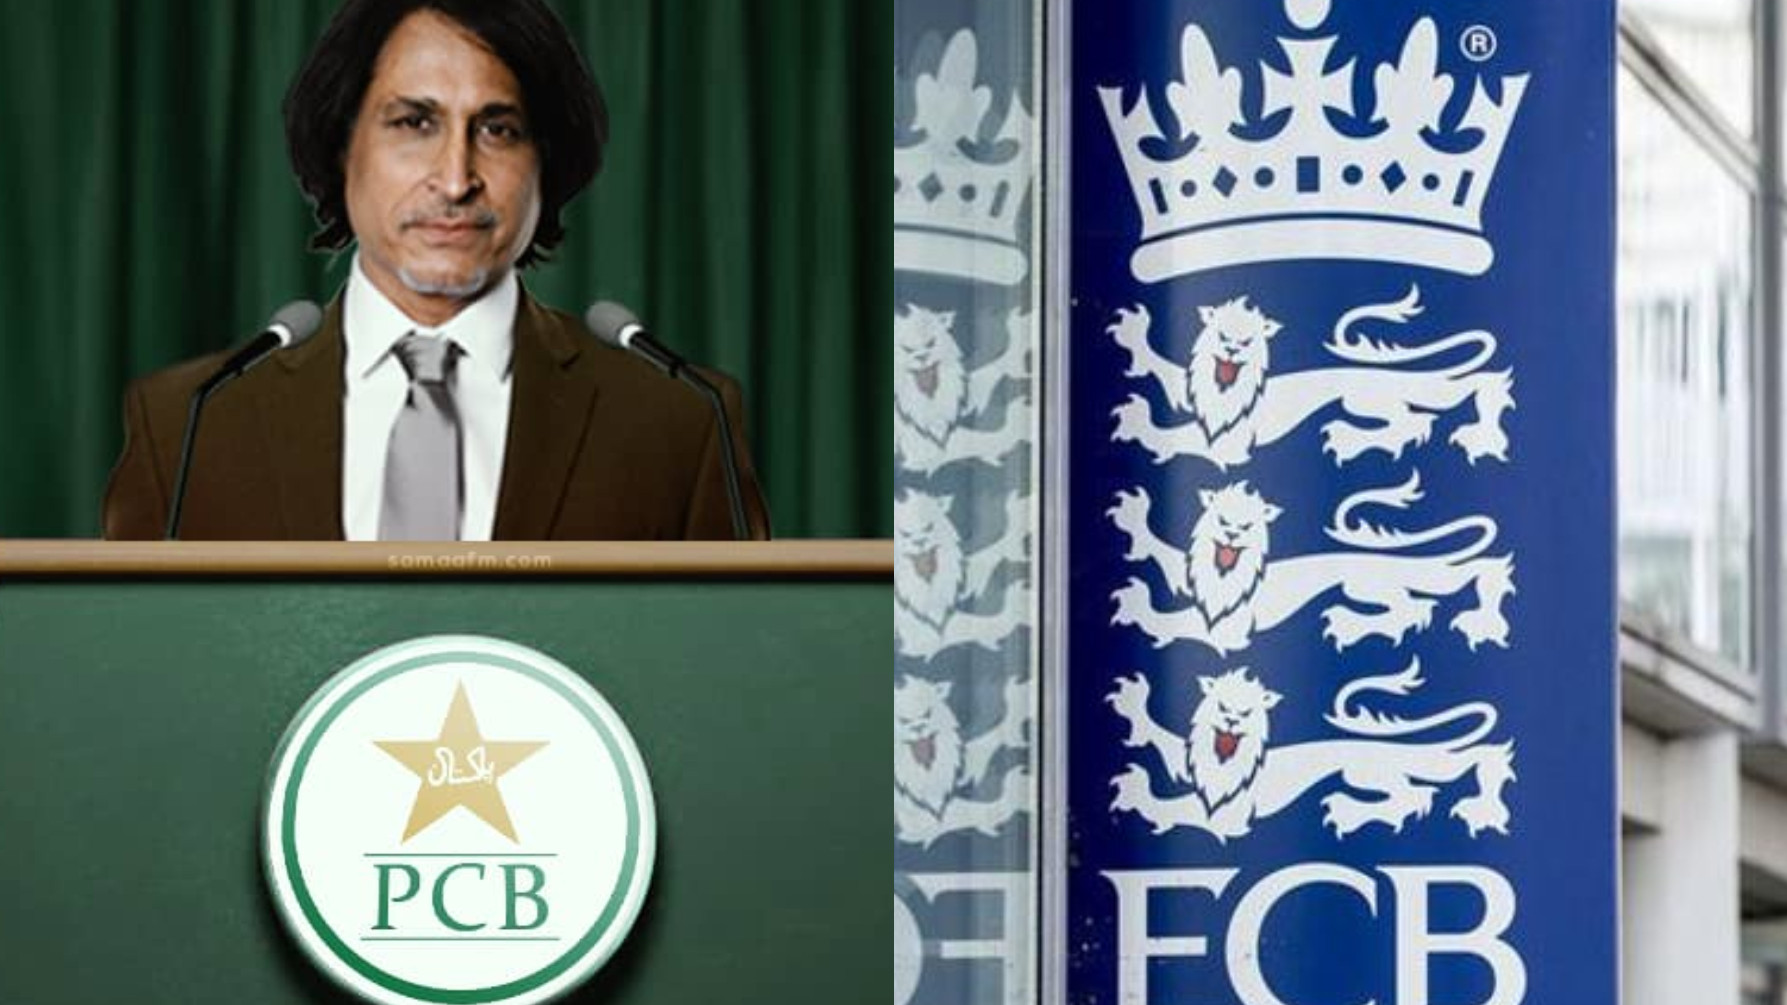 Pakistan team needs to become the best so others line up to play- Ramiz Raja on ECB withdrawal